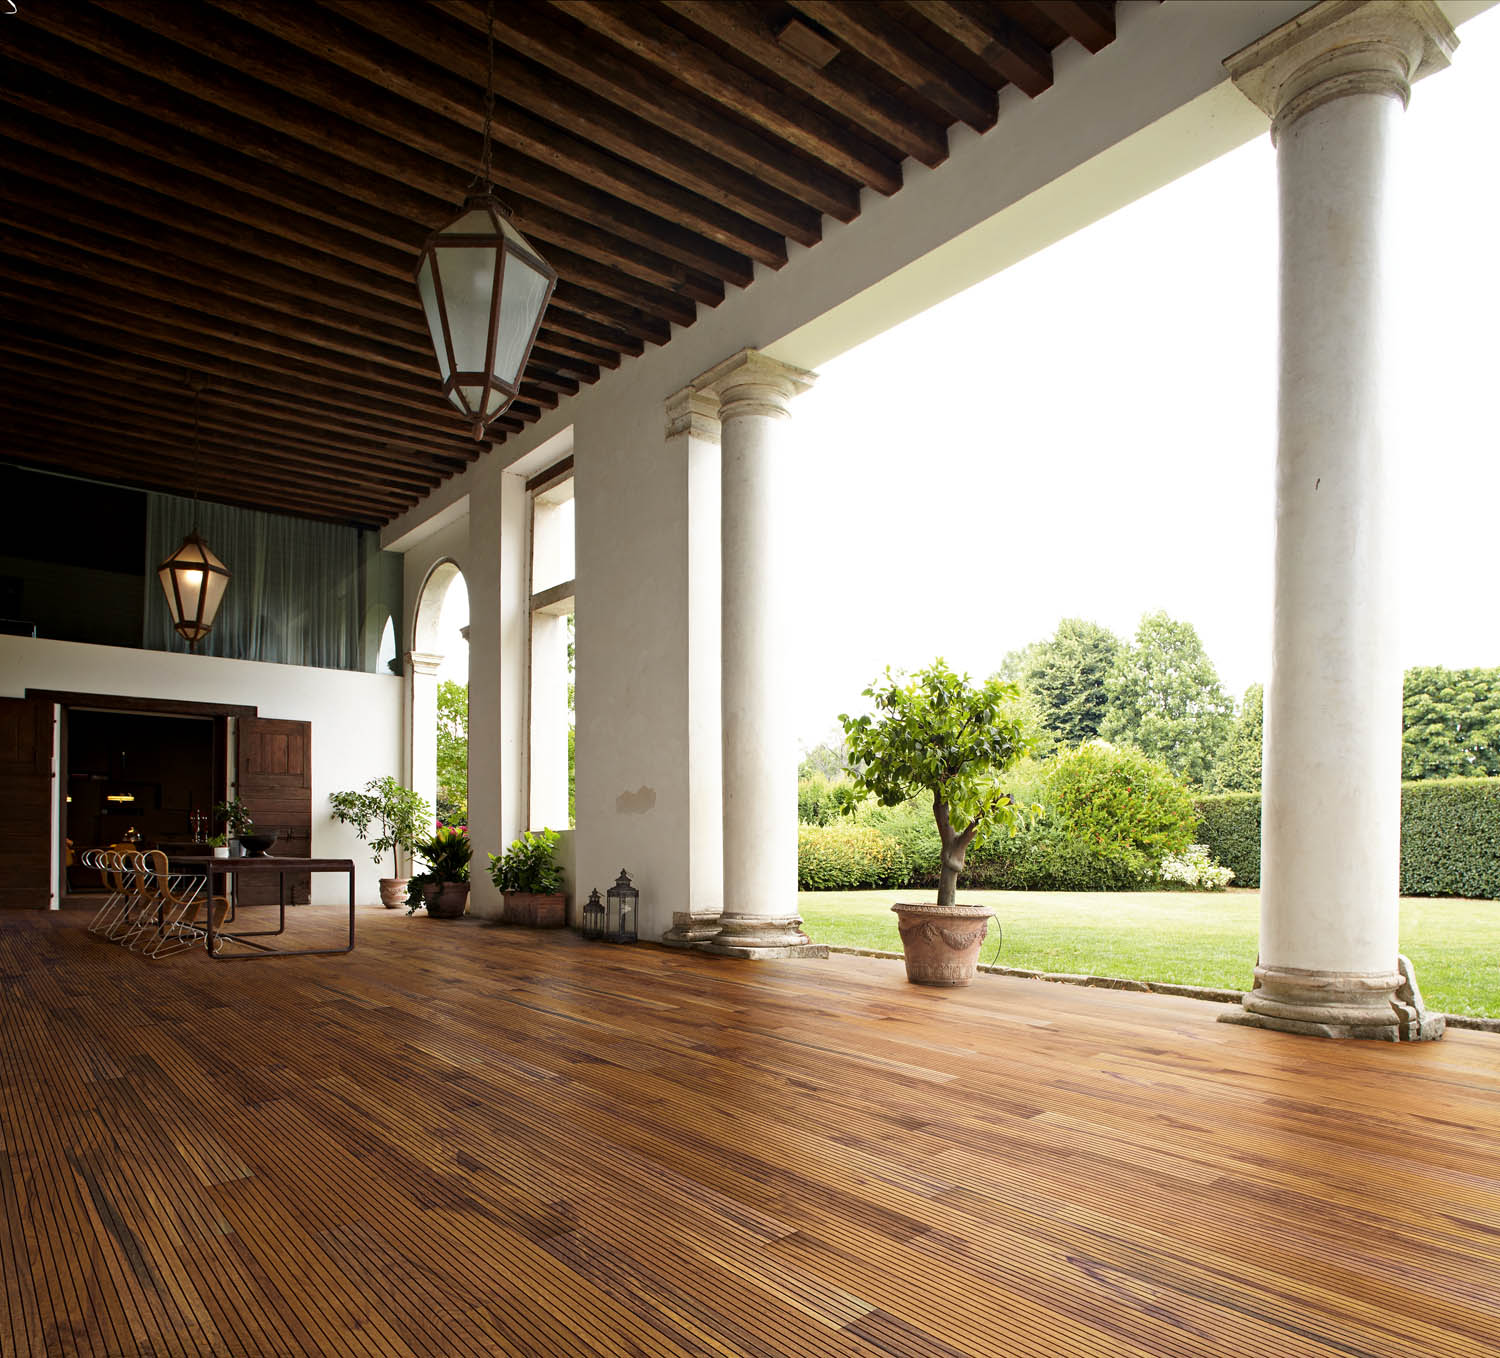 Courtesy of Listone Giordano Listone Giordano Marine, two-layer parquet in Teak with support layer in Beech